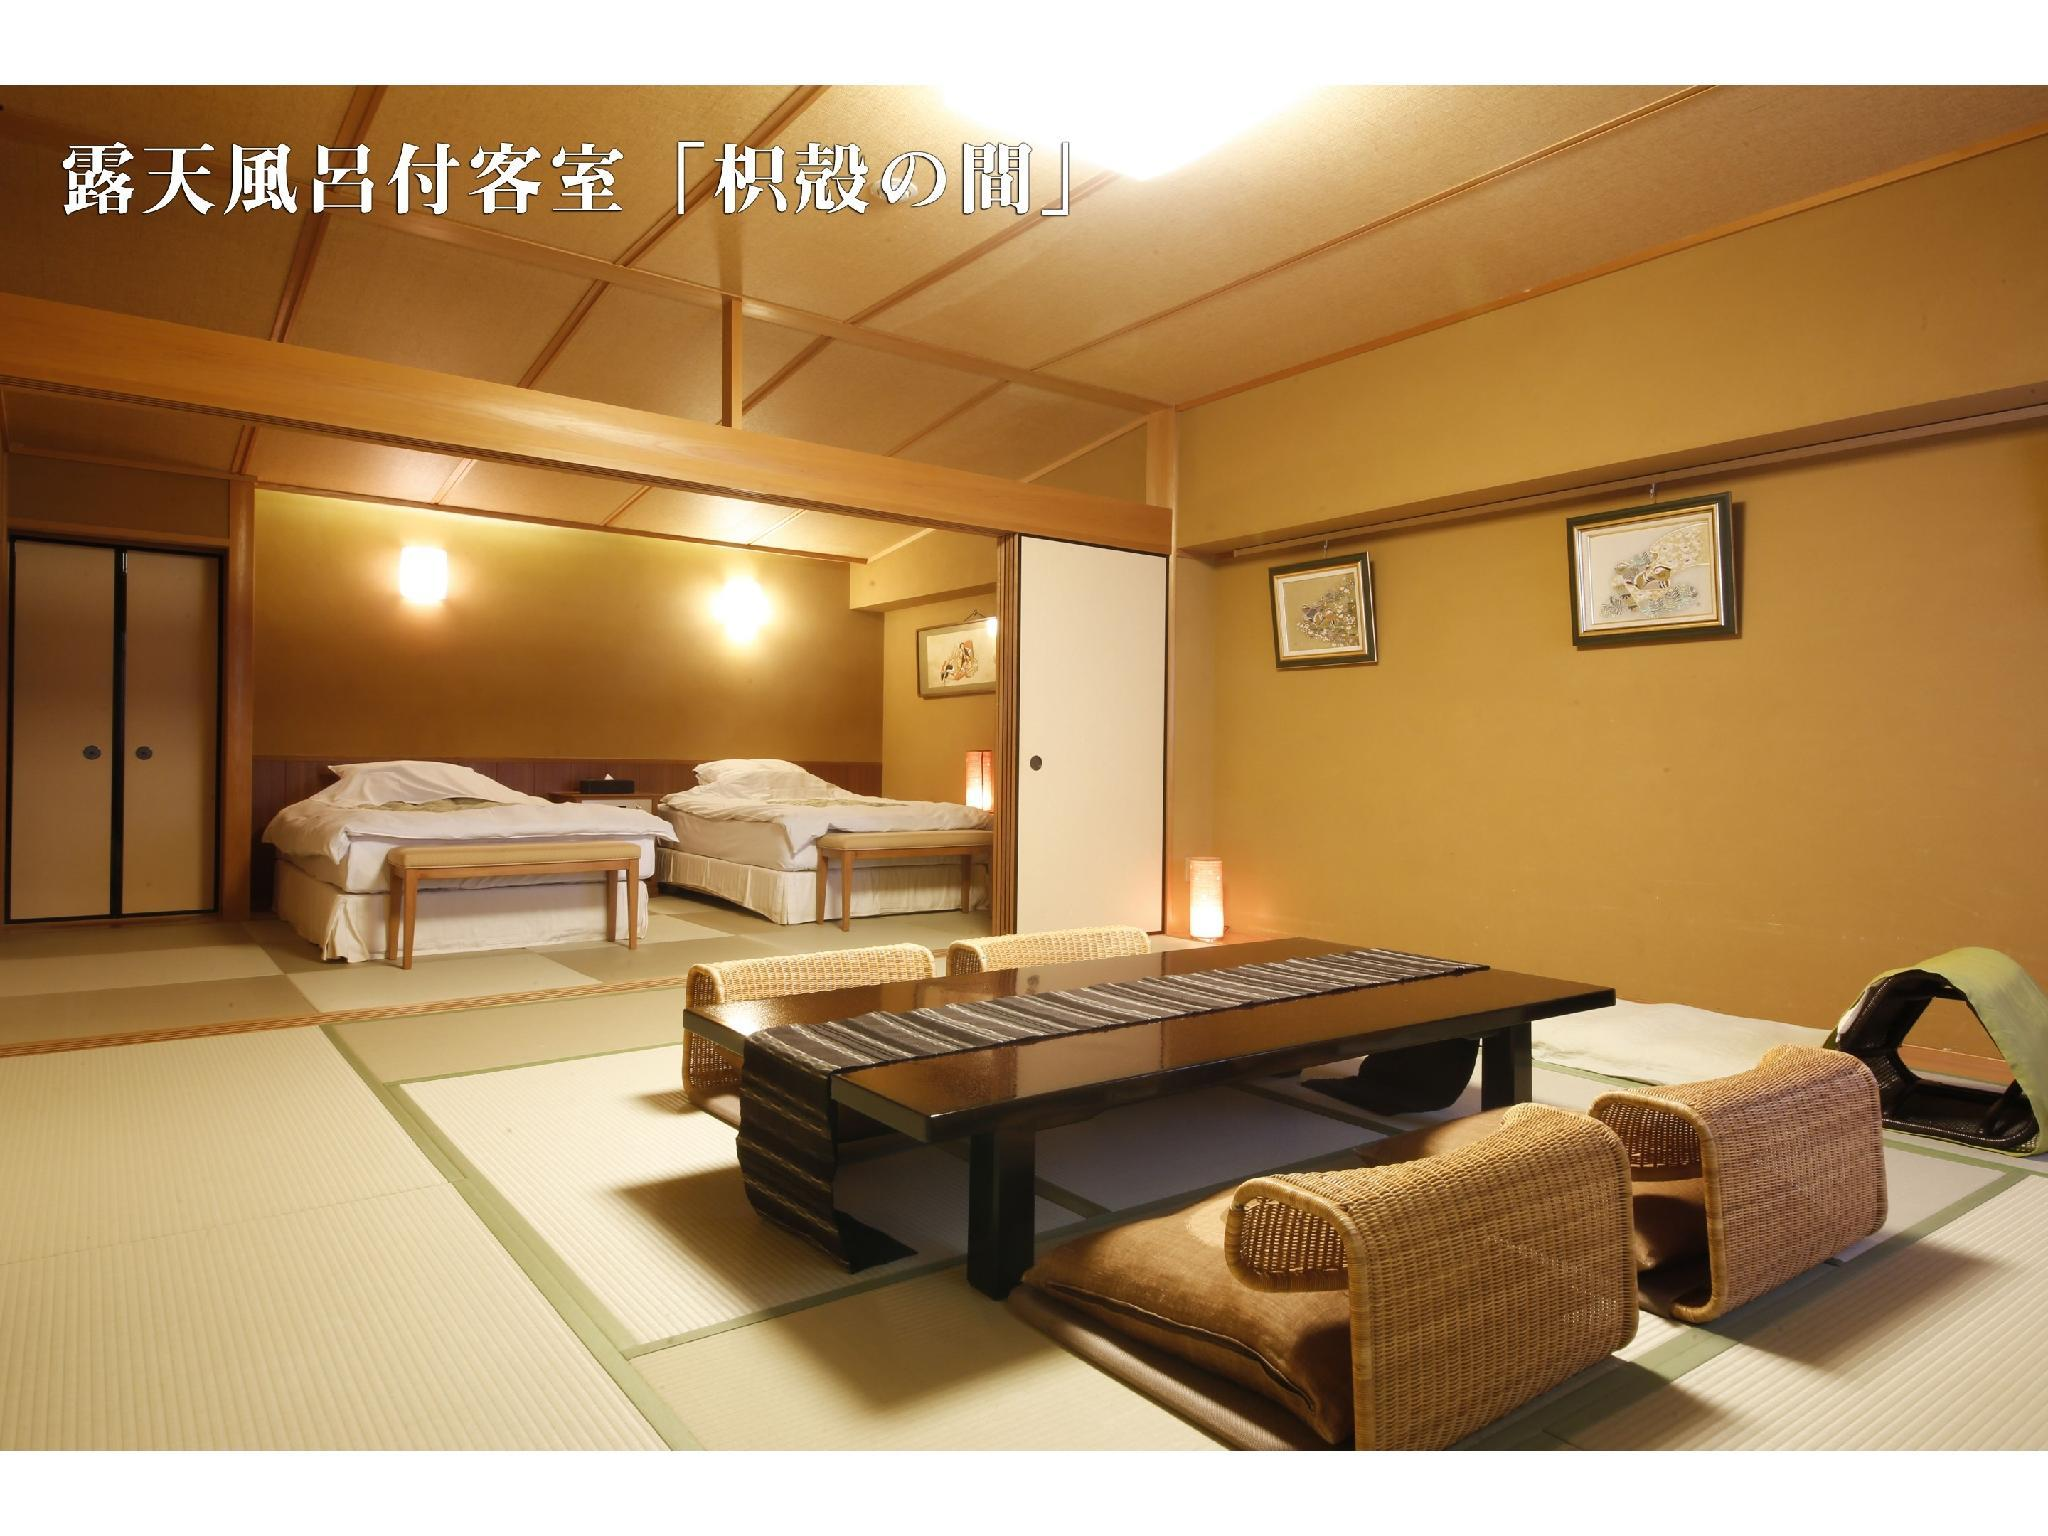 【金泉】露天風呂付きスイート客室【6名様定員】|26畳 (Japanese/Western-style Suite with Open-air Hot Spring Bath (Barrier Free Type))